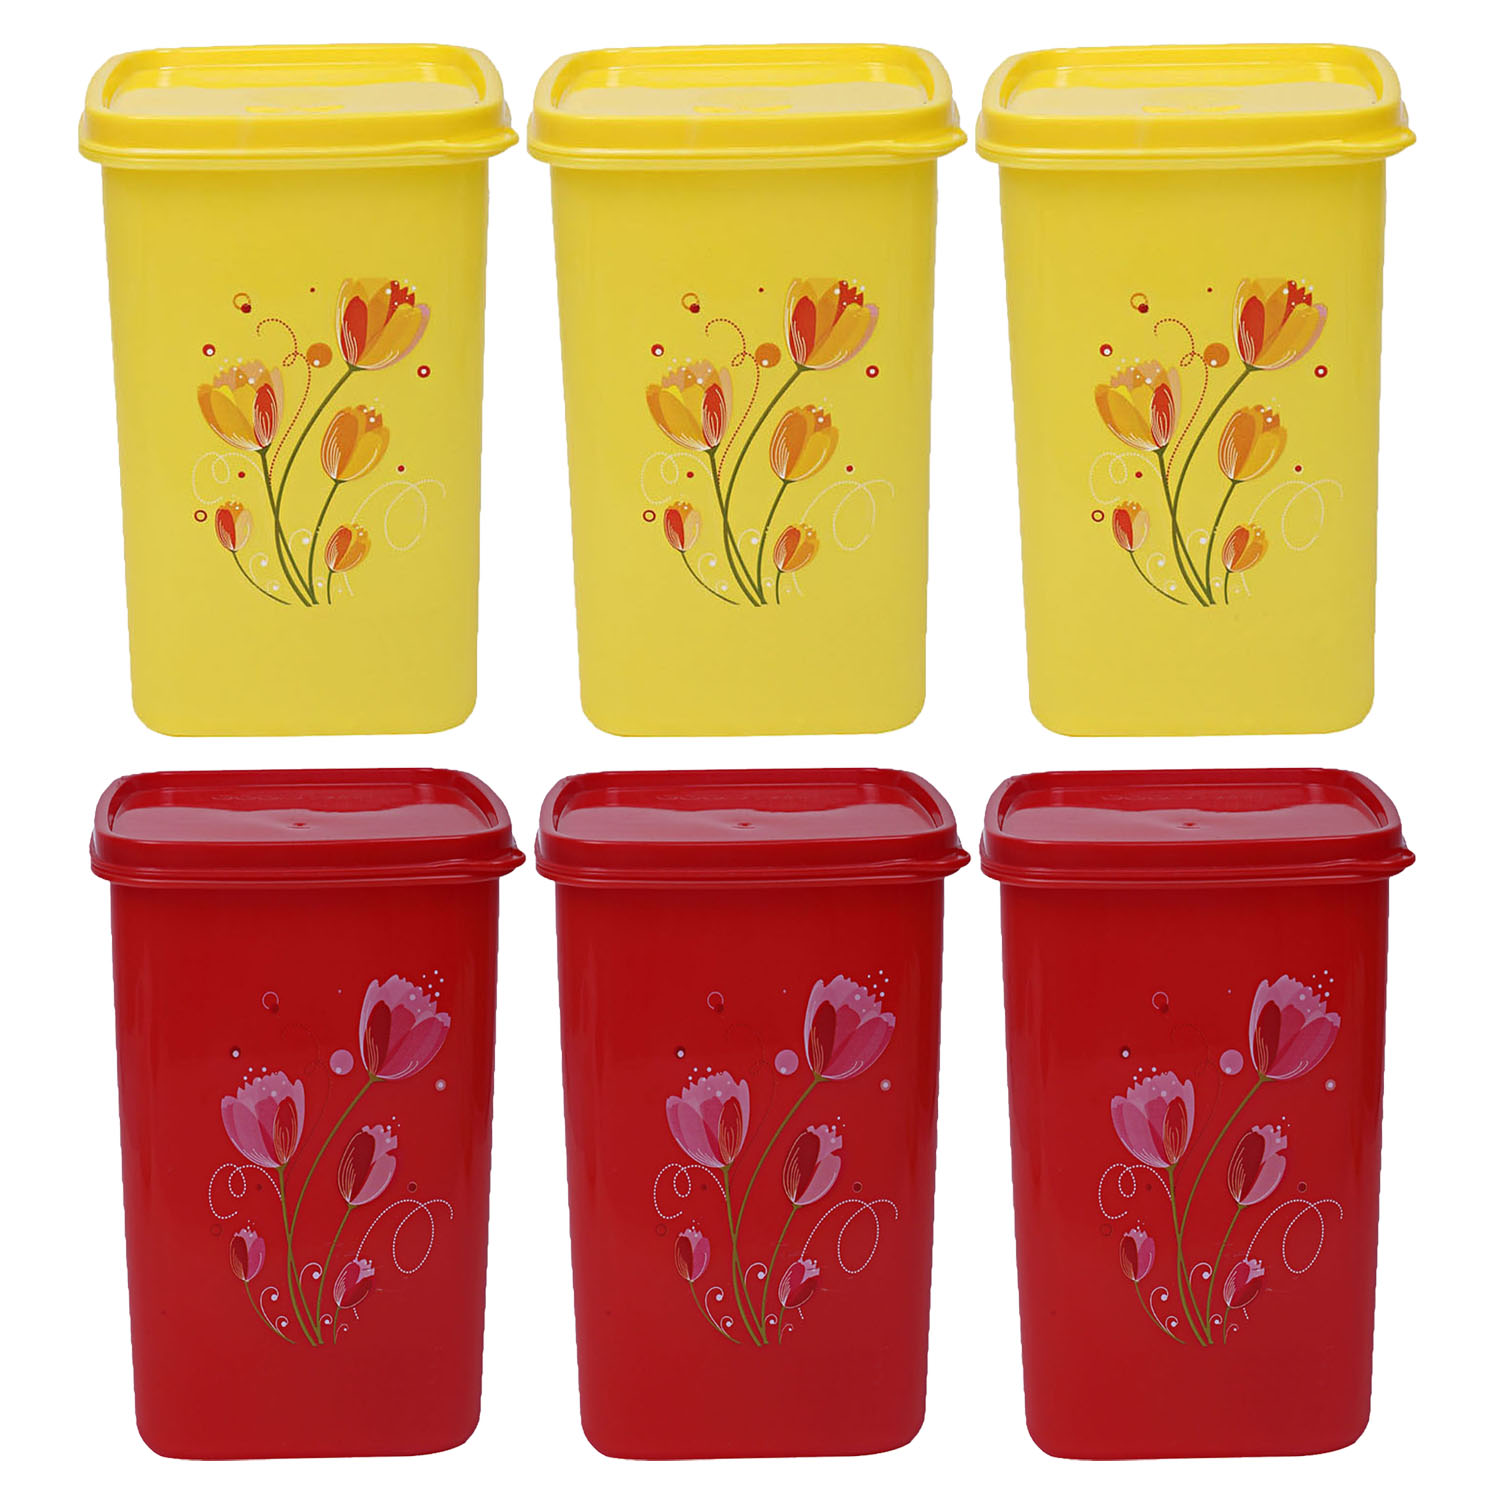 Kuber Industries Plastic 6 Pieces Multipurpose Storage Container Set 1000ml (Yellow & Red) - CTKTC23402